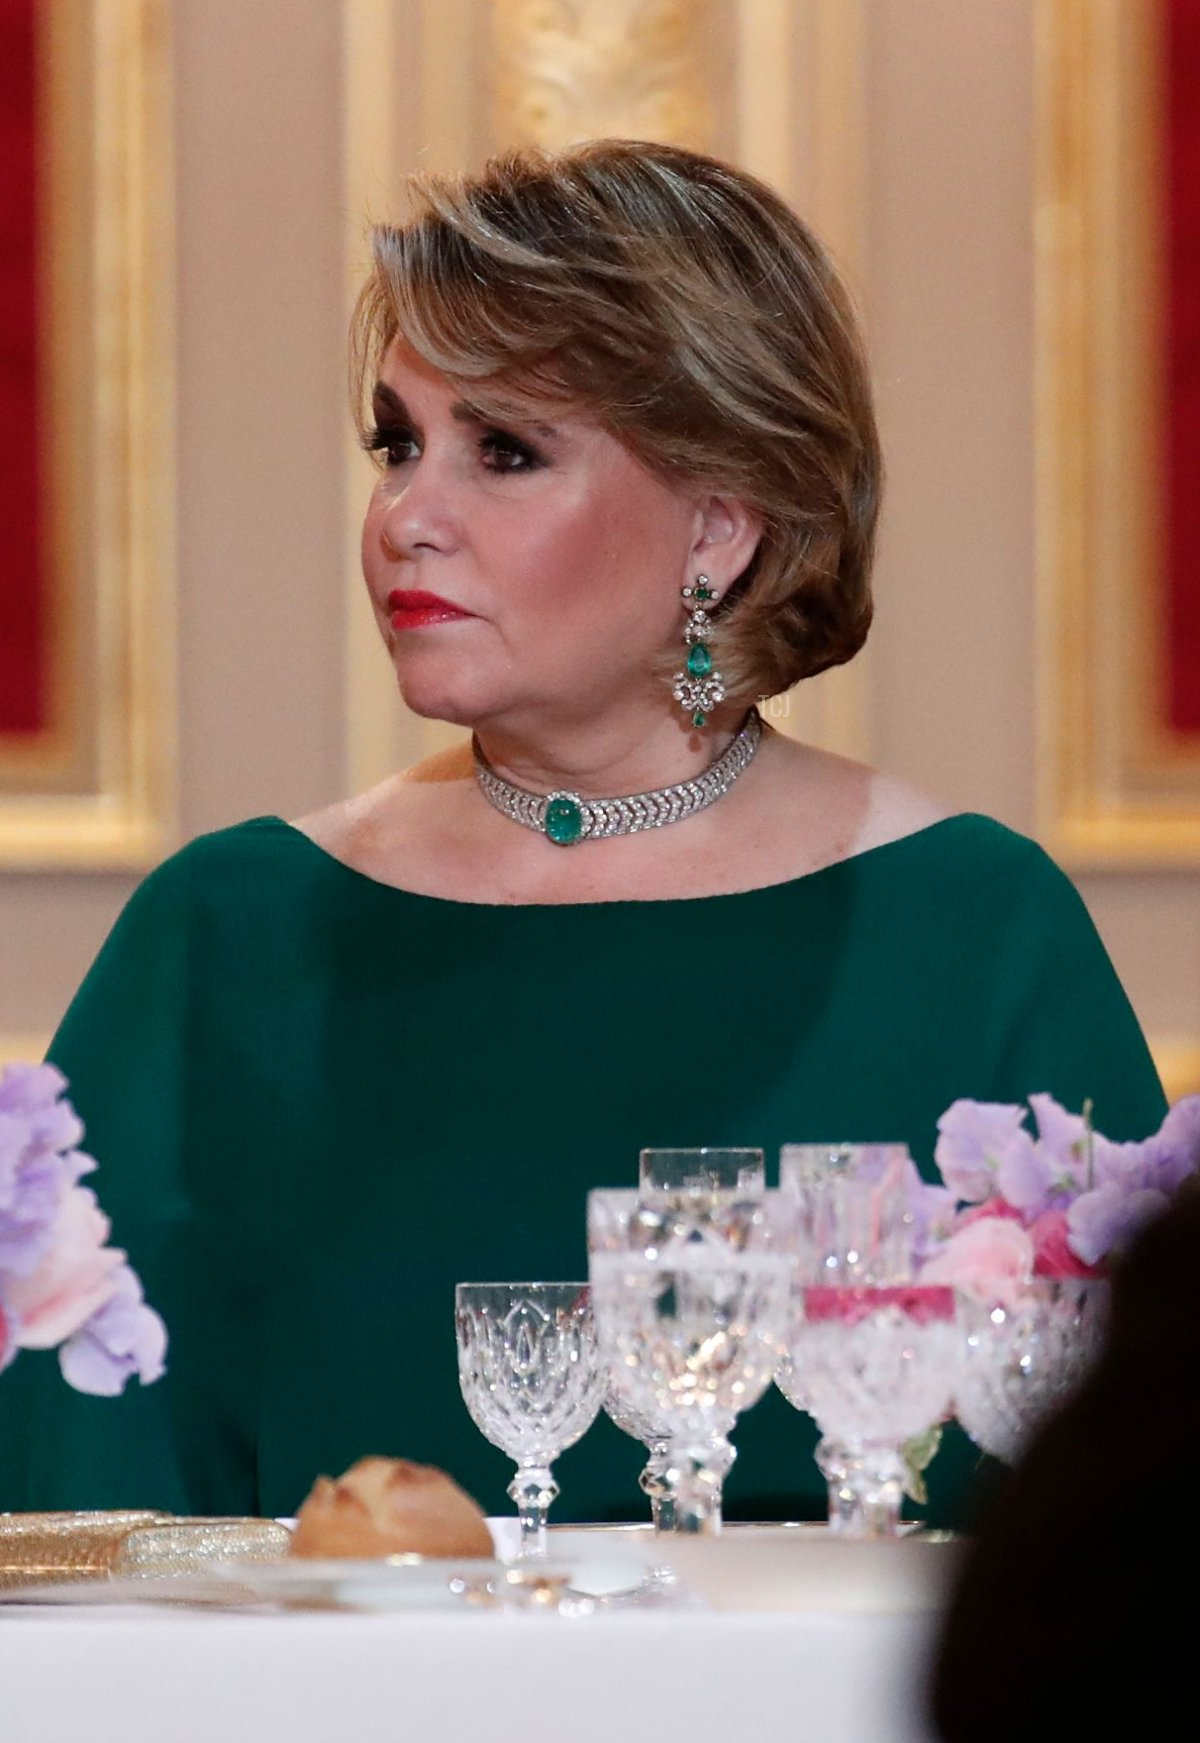 Maria Teresa, Grand Duchess of Luxembourg, attends a State dinner held at the Elysee Palace in Paris, on March 19, 2018